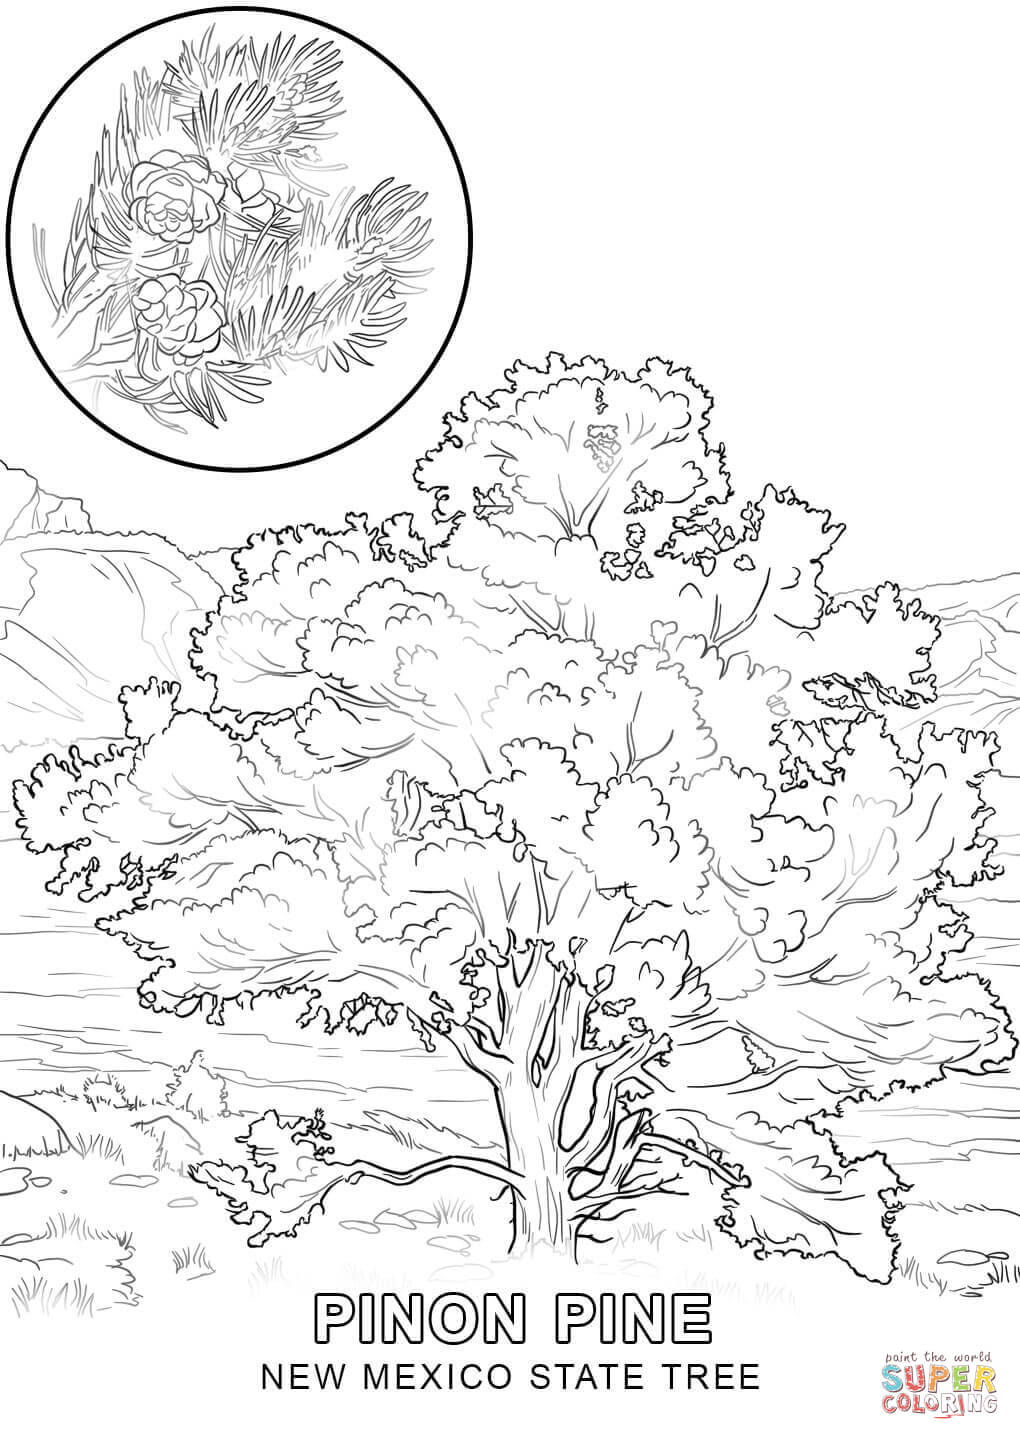 New Mexico State Tree Coloring Page Free Printable Coloring Pages Coloring Home